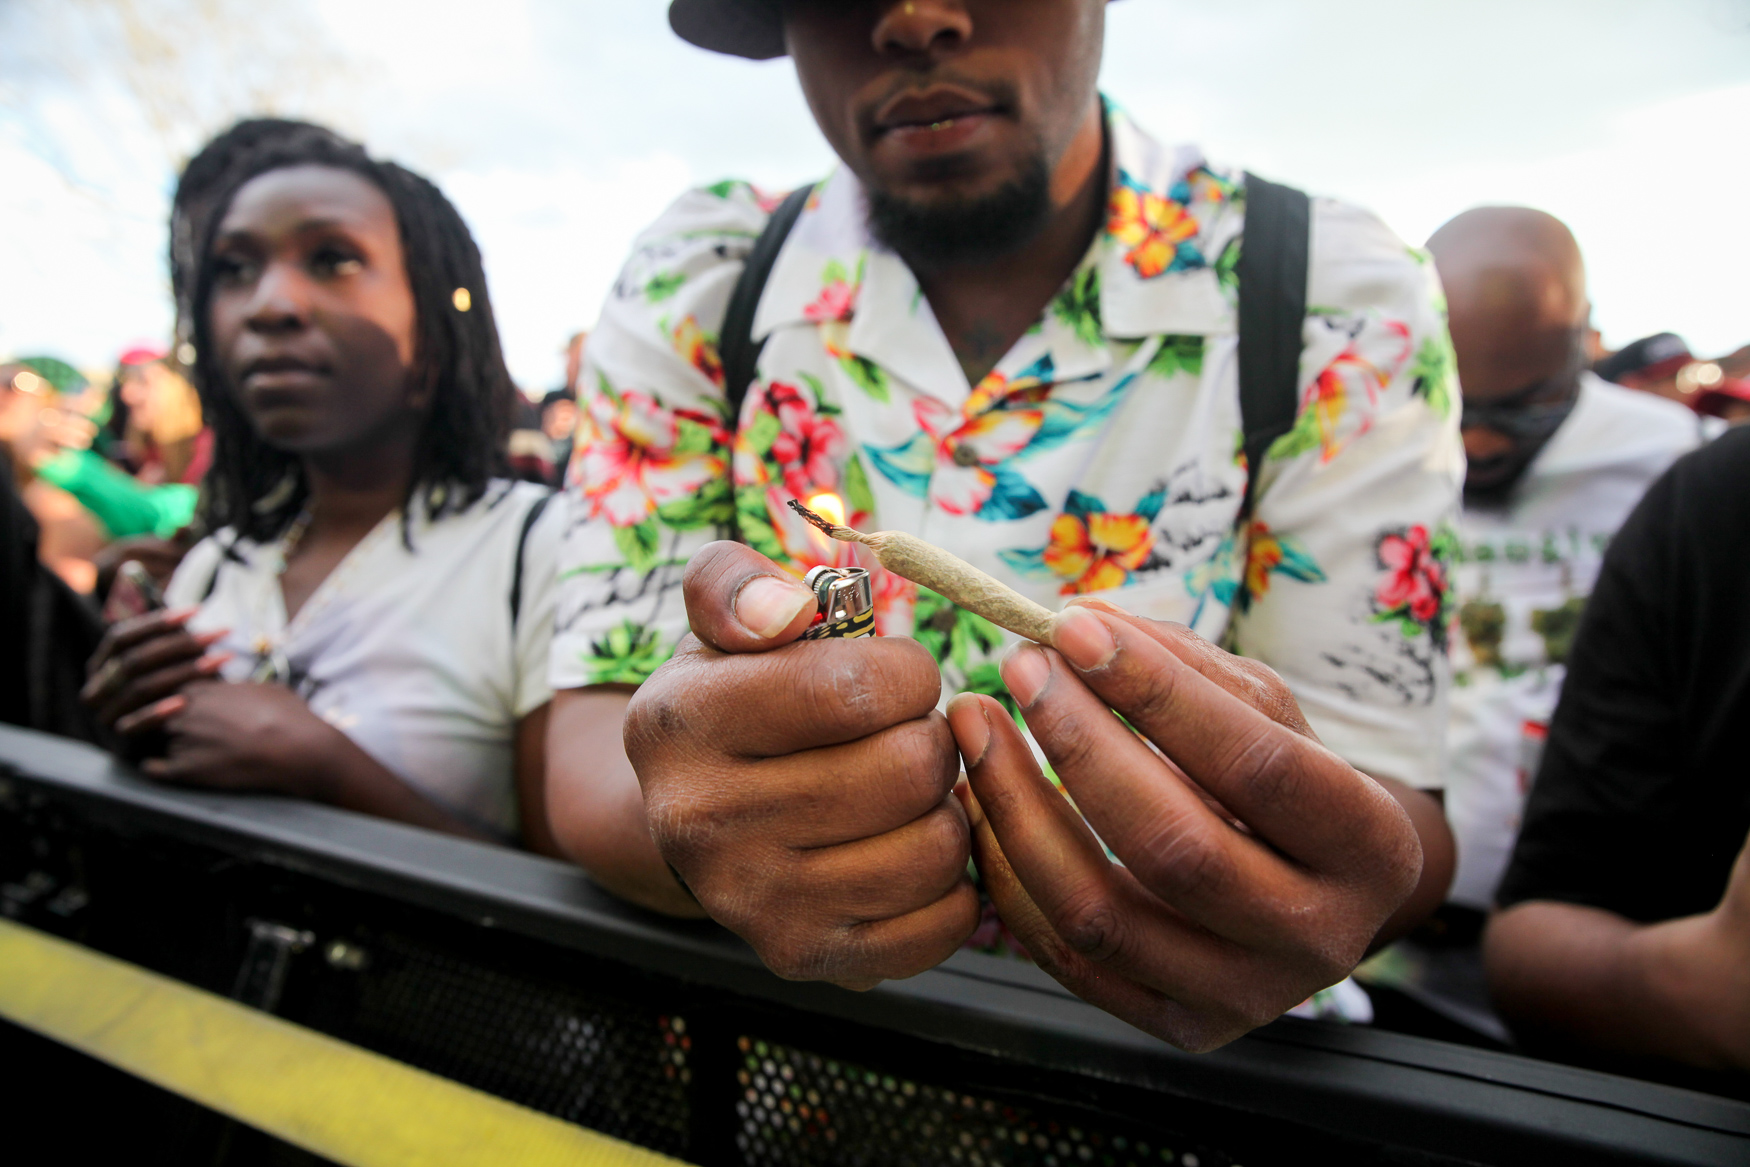 Thousands of people from the DMV and beyond joined in the 4/20 festivities at the fourth annual National Cannabis Festival. The grounds of RFK Stadium were packed with{ } people sampling cannabis, eating from one of the dozens of food trucks or learning more about cannabis activism. The festival also included live music, including Ludacris, Action Bronson and DJ Biz Markie and more. (Amanda Andrade-Rhoades/DC Refined)